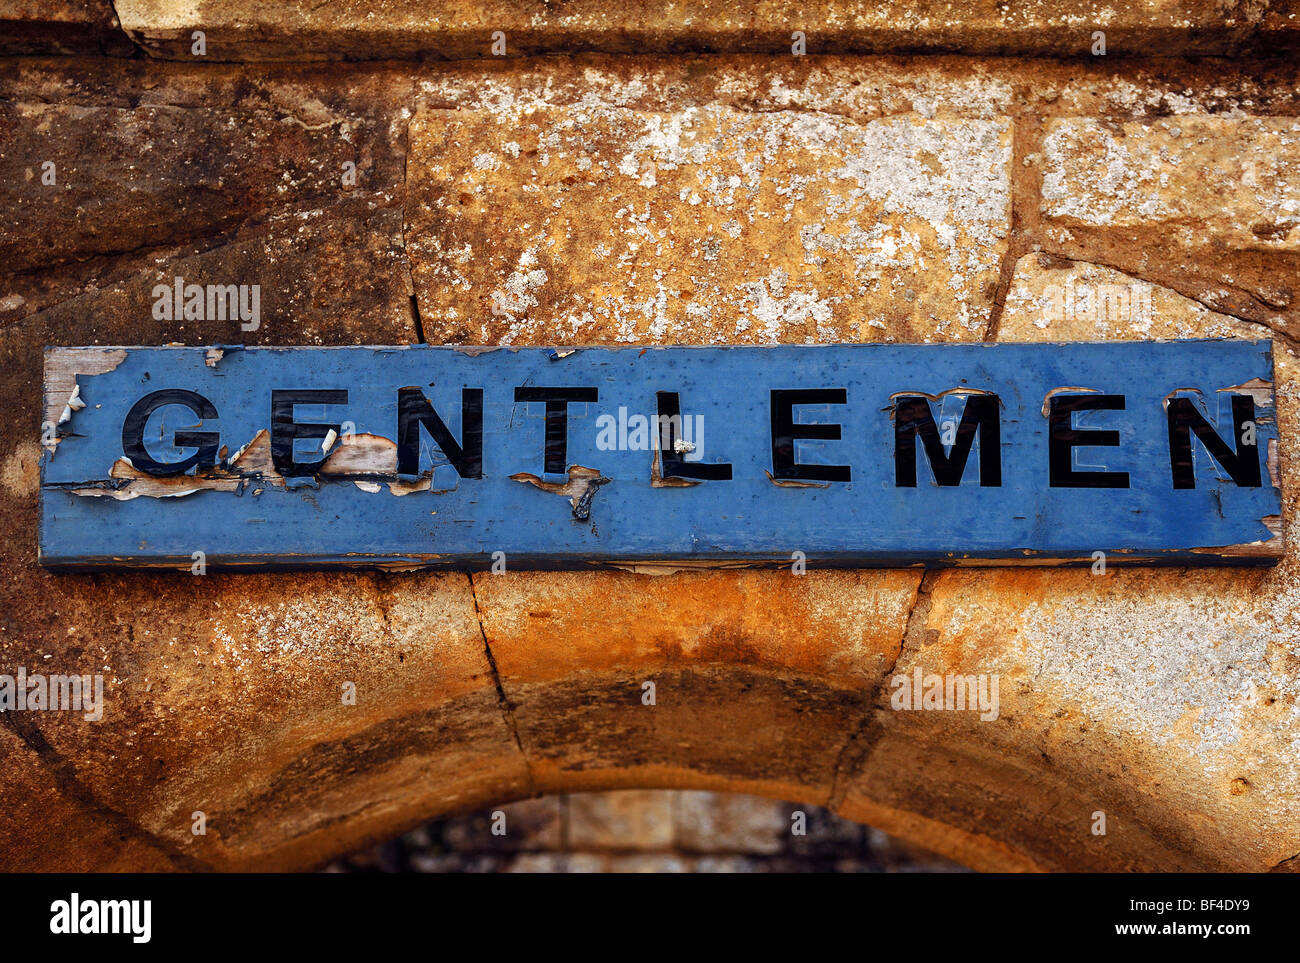 Toilet sign 'Gentlemen' in Kiftsgate Court Gardens, Mickleton, Chipping Campden, Gloucestershire, England, - Stock Image